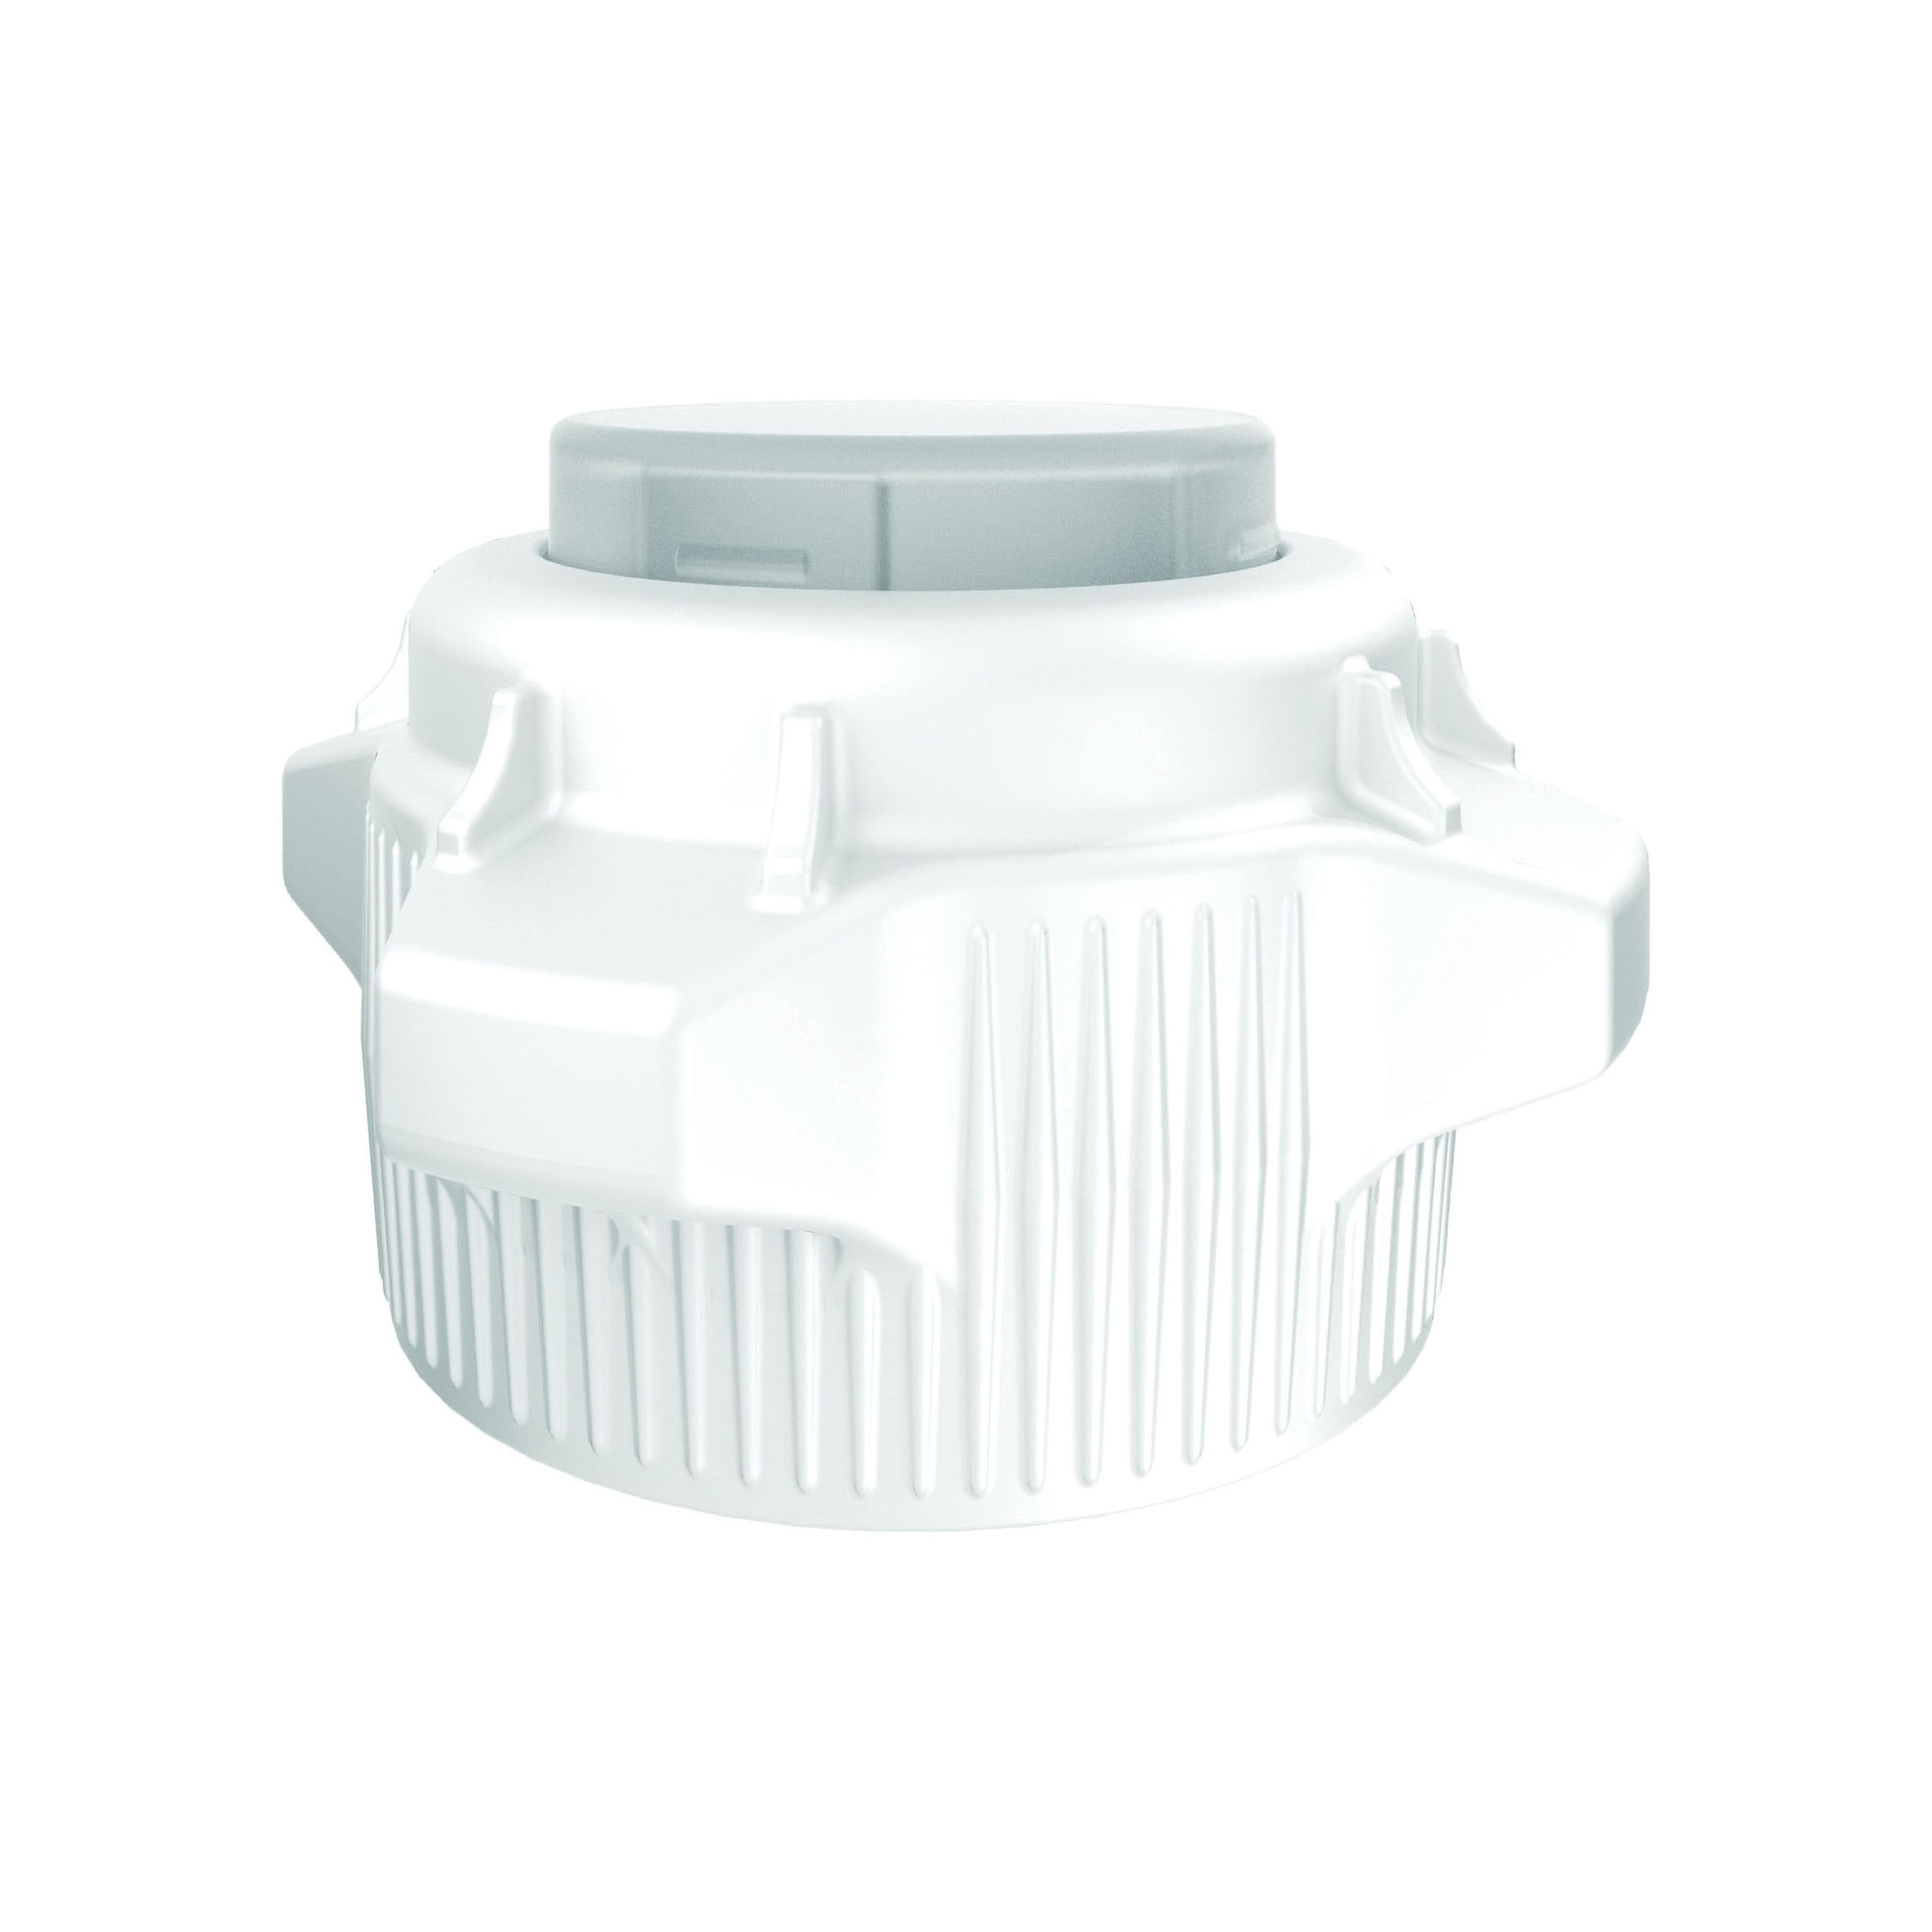 Justrite® 12858 Open Top Carboy Cap With Closed Adapter, 5 in Dia x 83 mm Mouth, Polypropylene, White